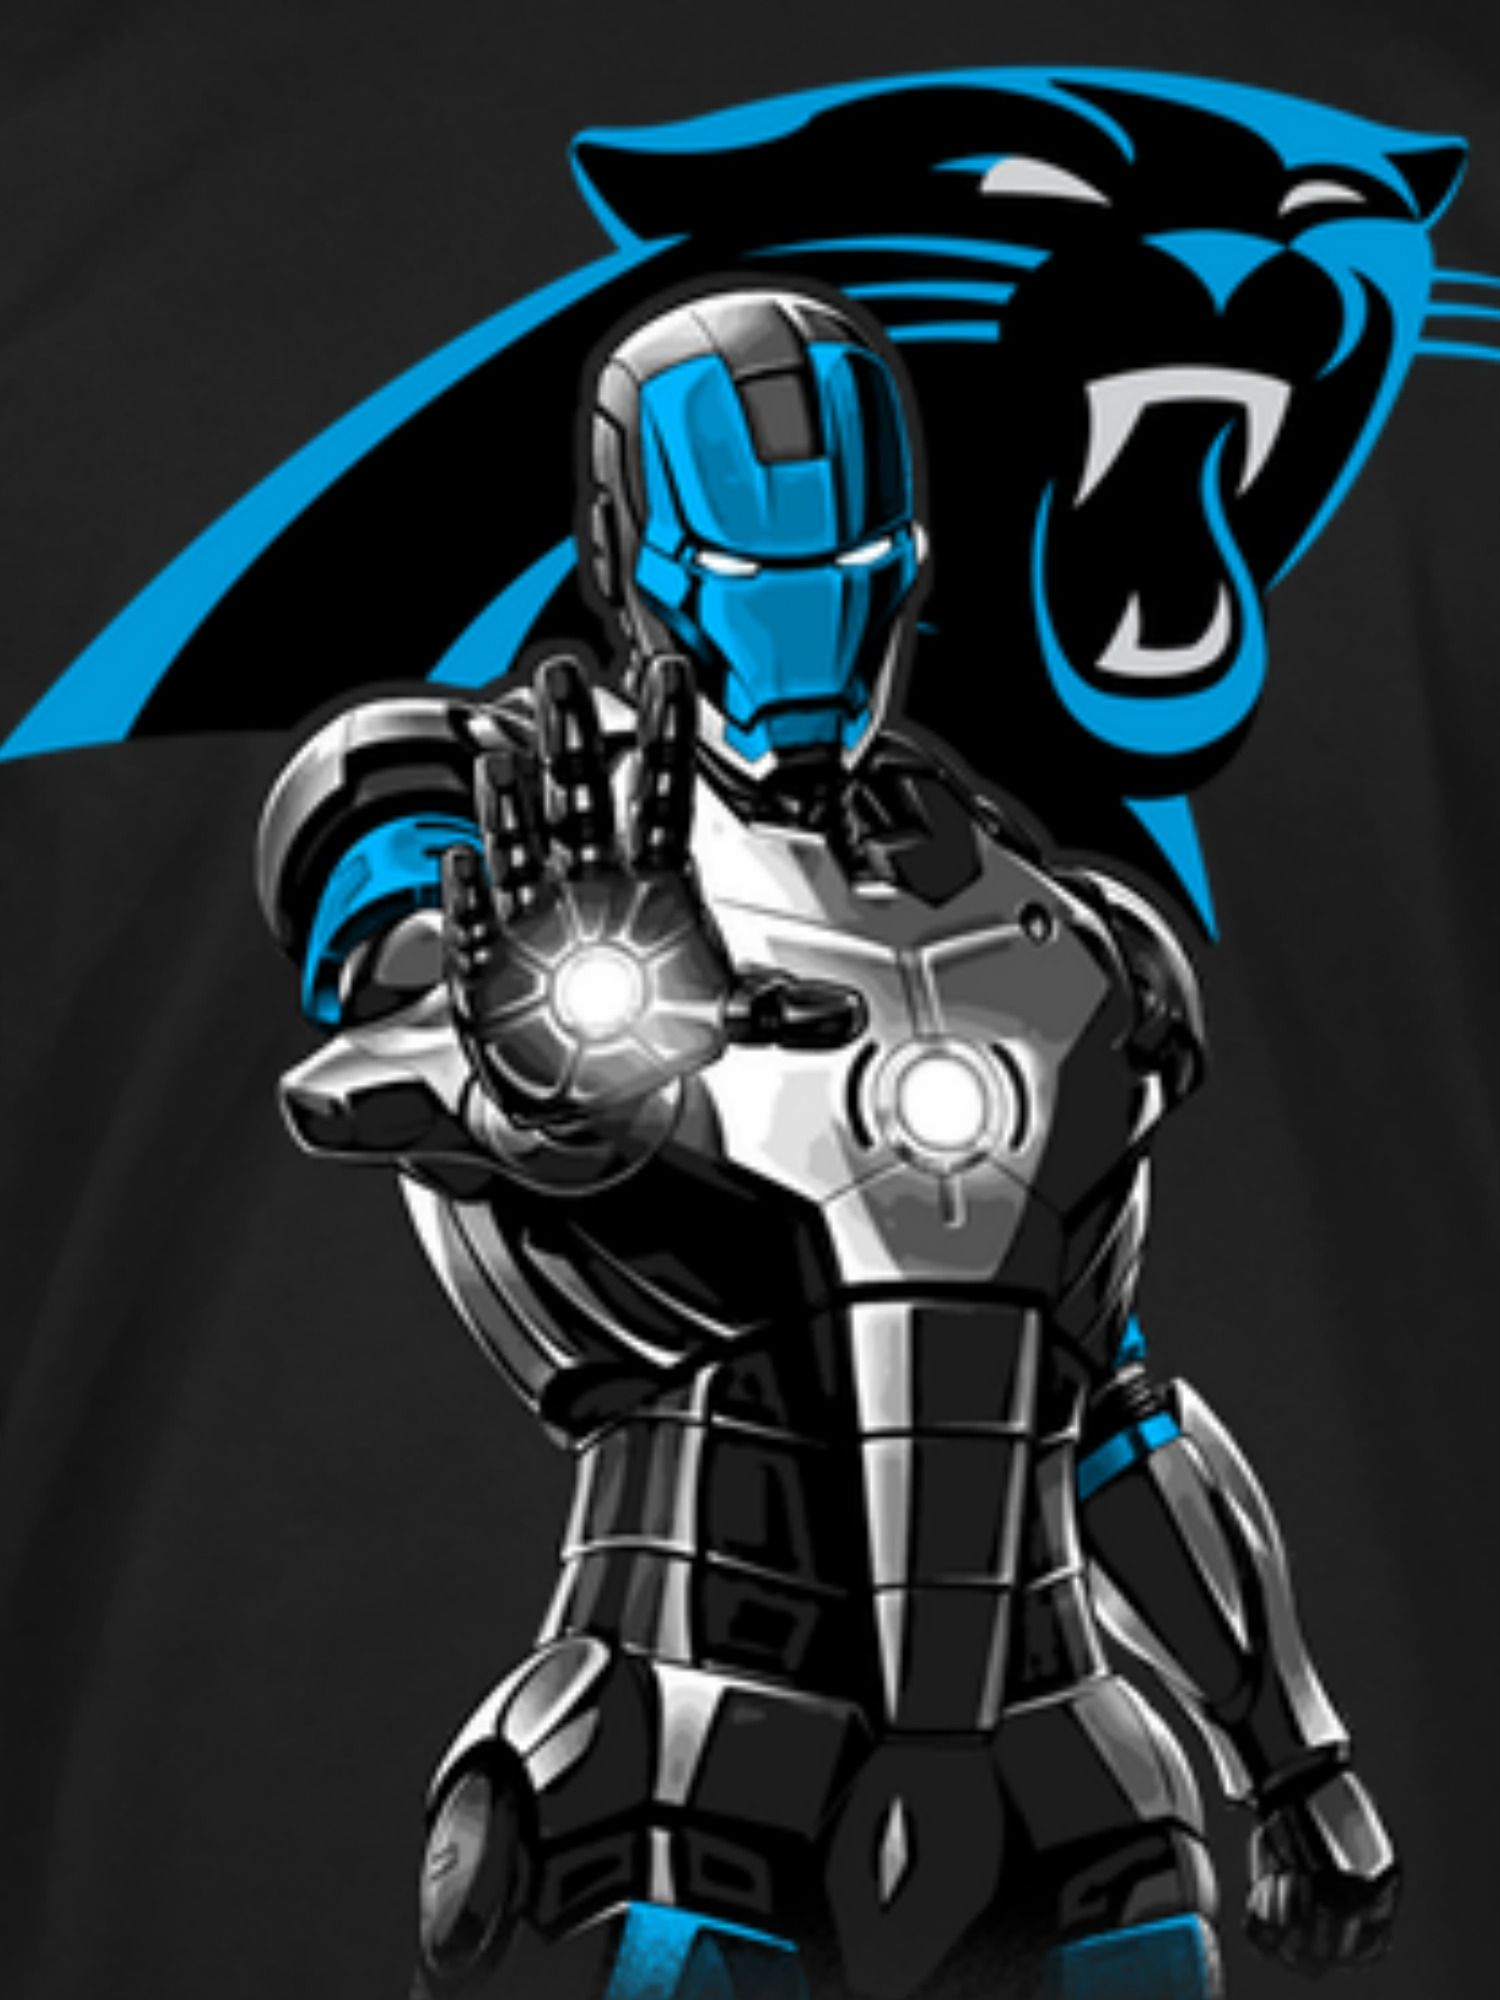 Pin By Nate Brinson On Carolina Panthers Nfl Carolina Panthers Carolina Panthers Wallpaper Carolina Panthers